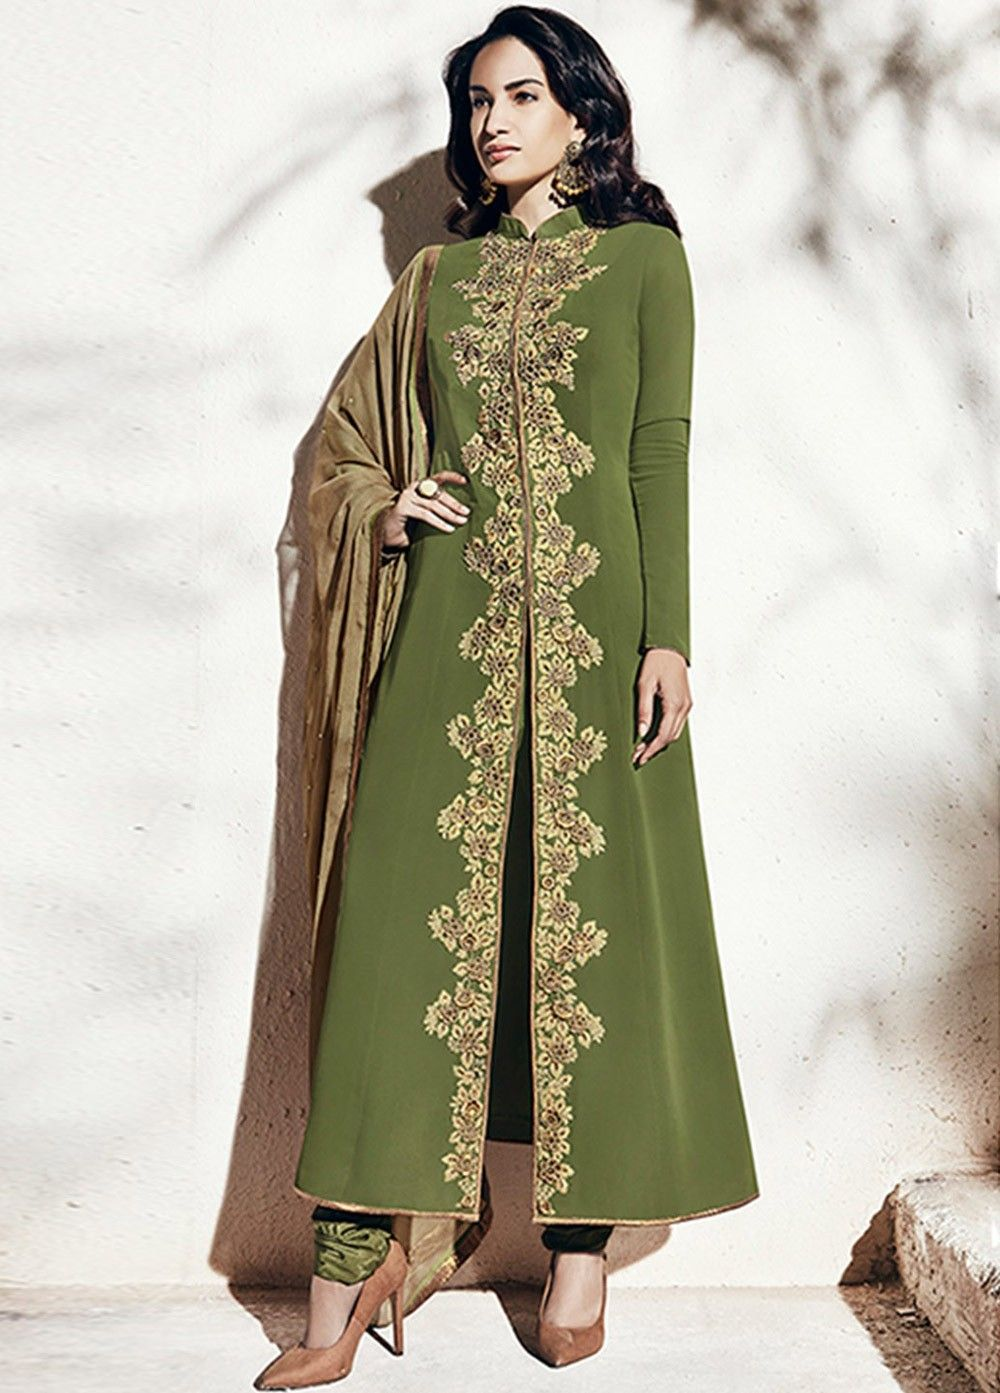 731f4e93c24 Buy Olive green color georgette party wear straight cut salwar kameez at  kollybollyethnics with free worldwide shipping.